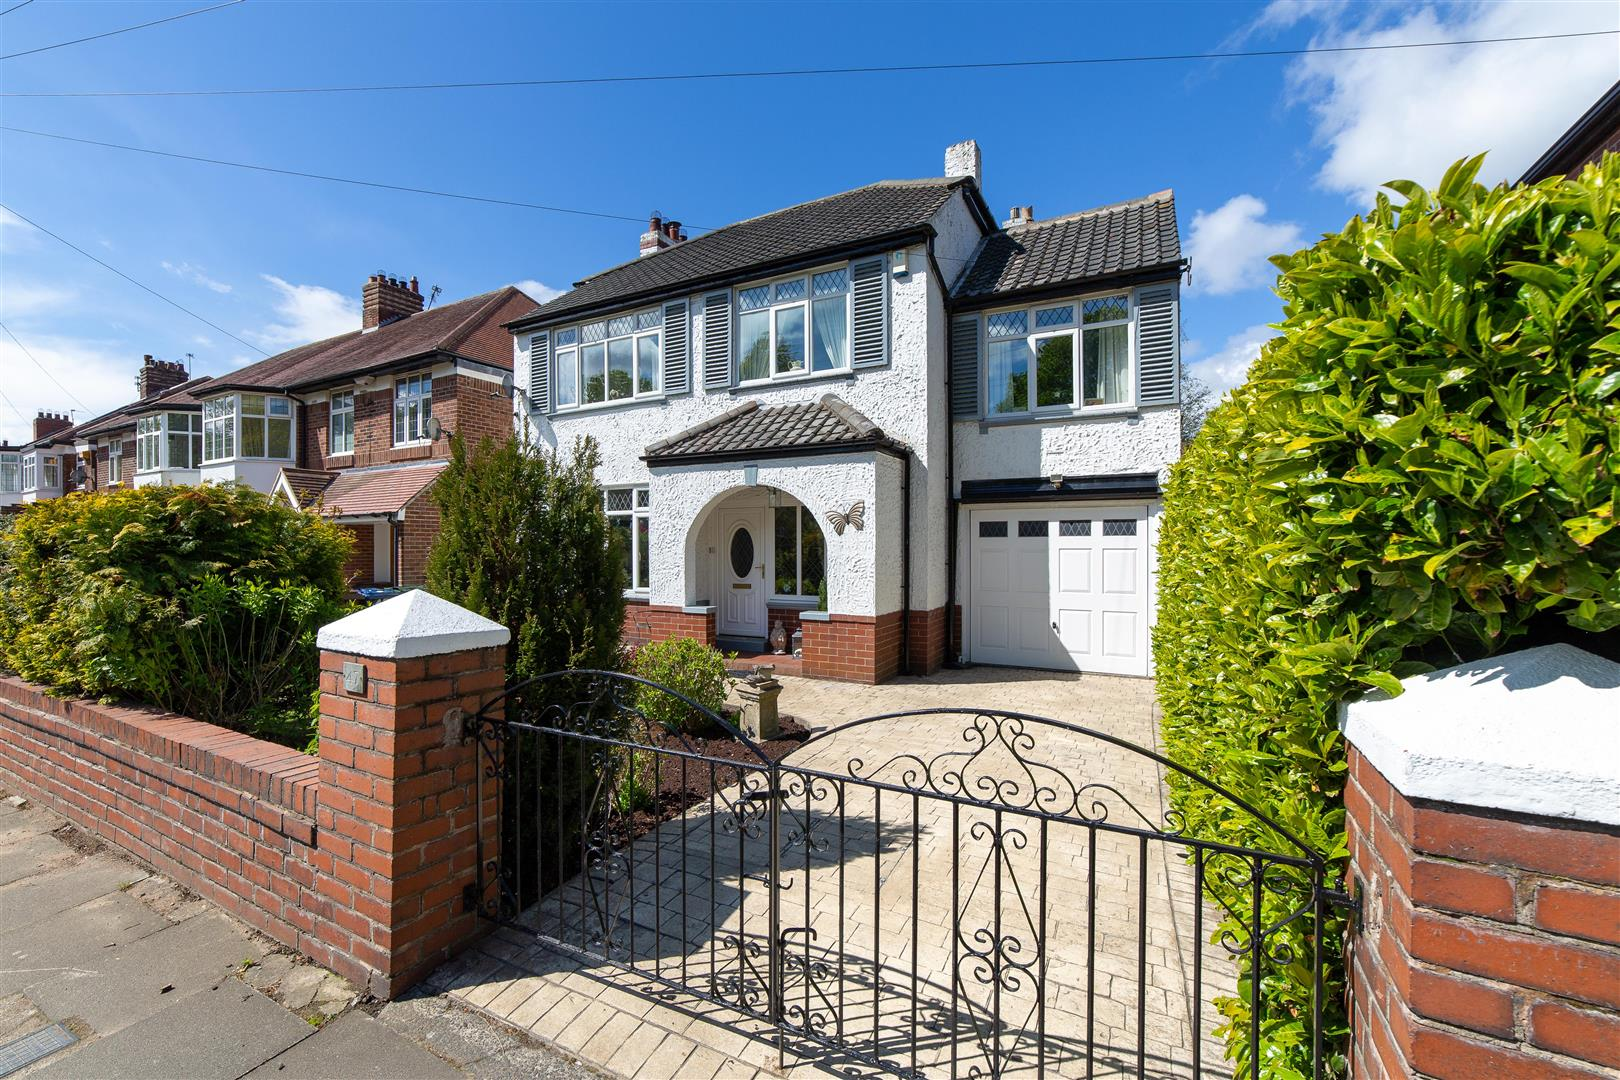 4 bed detached house for sale in Great North Road, Brunton Park  - Property Image 1